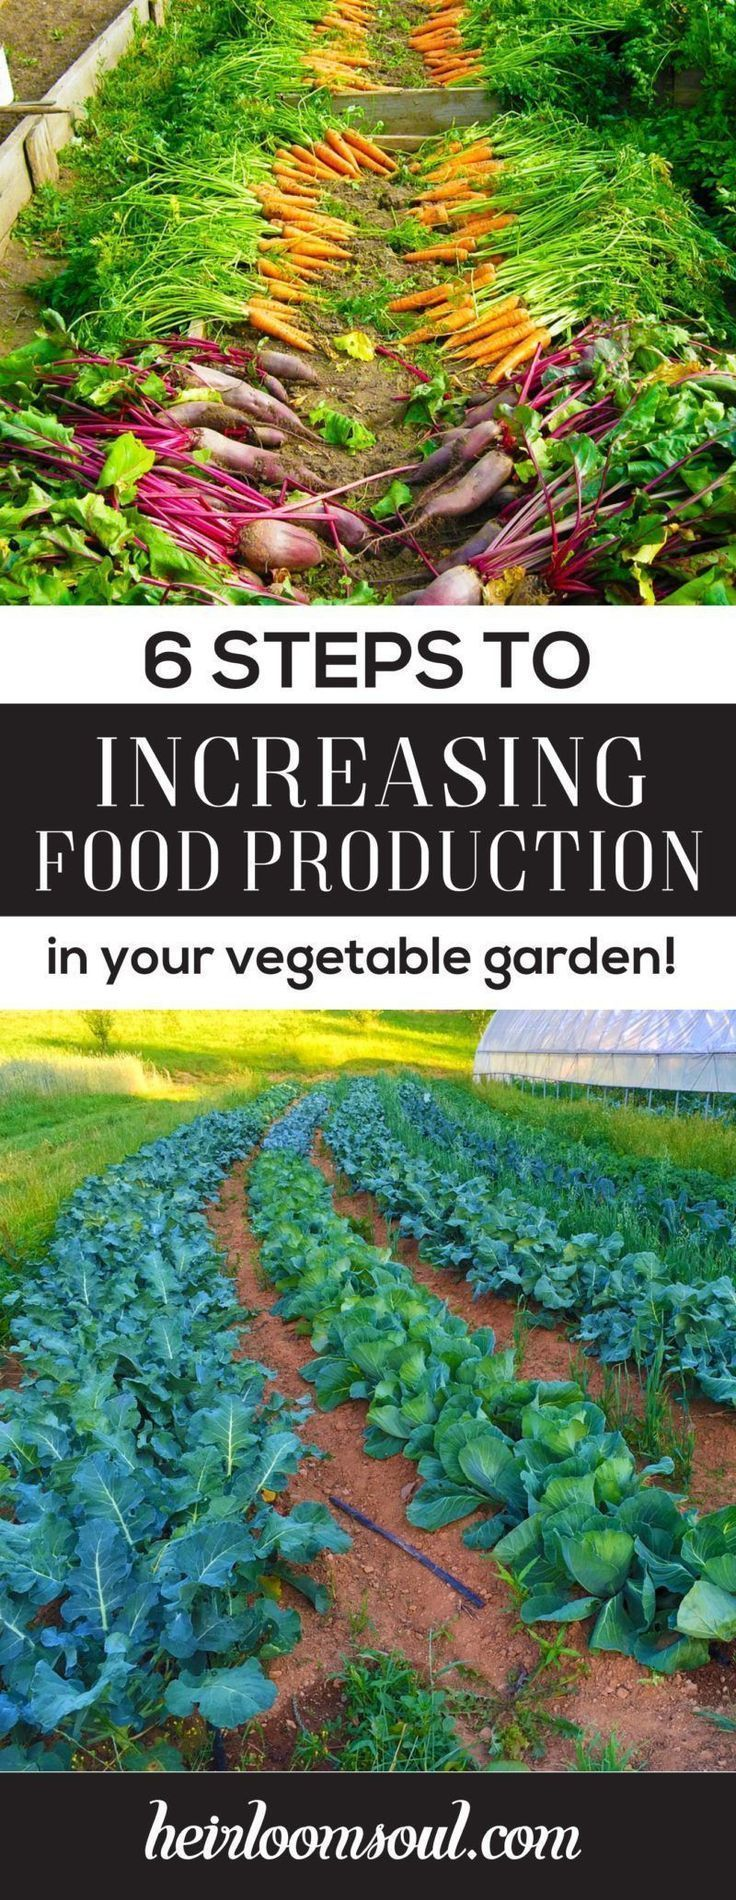 How to Increase Food Production in Your Vegetable Garden in 6 Steps   Heirloom Soul   heirloomsoul.com #gardeninghowto #vegetablesgardening